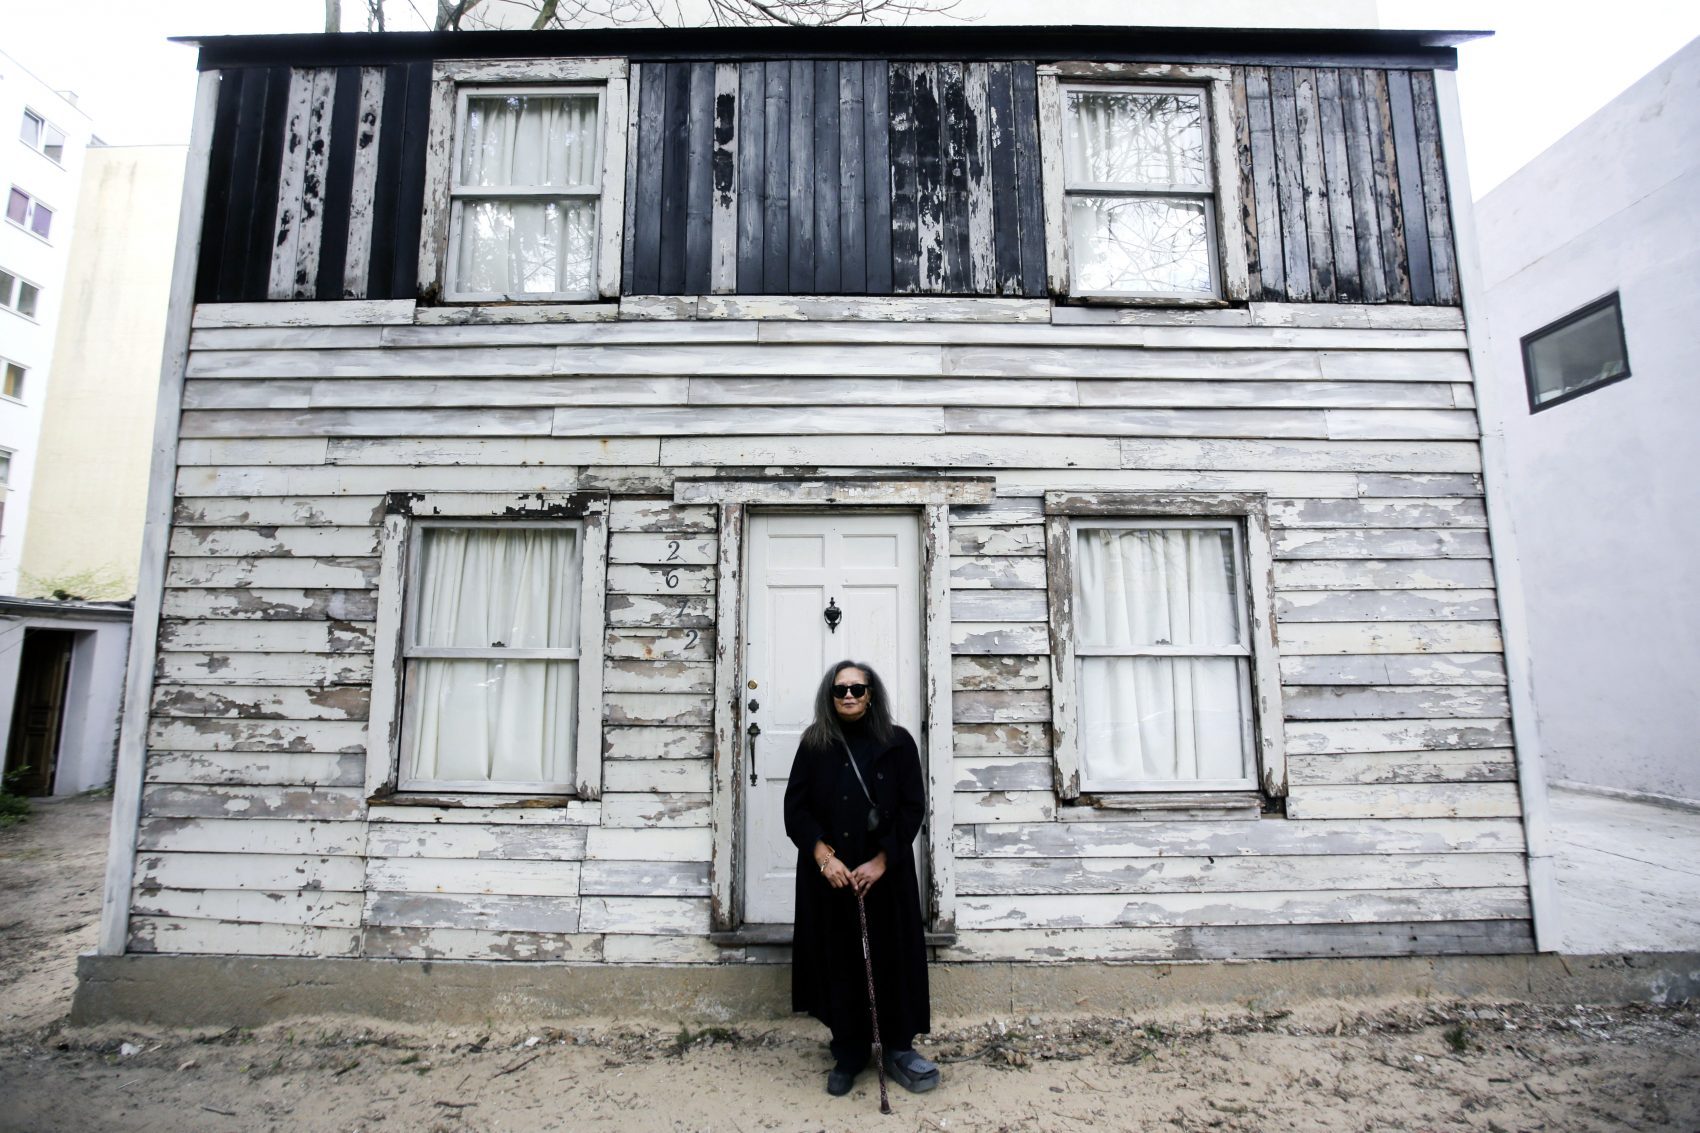 Rhea McCauley, a niece of the late civil rights activist Rosa Parks, poses in front of the rebuilt house of Rosa Parks in Berlin. (Markus Schreiberl/AP)